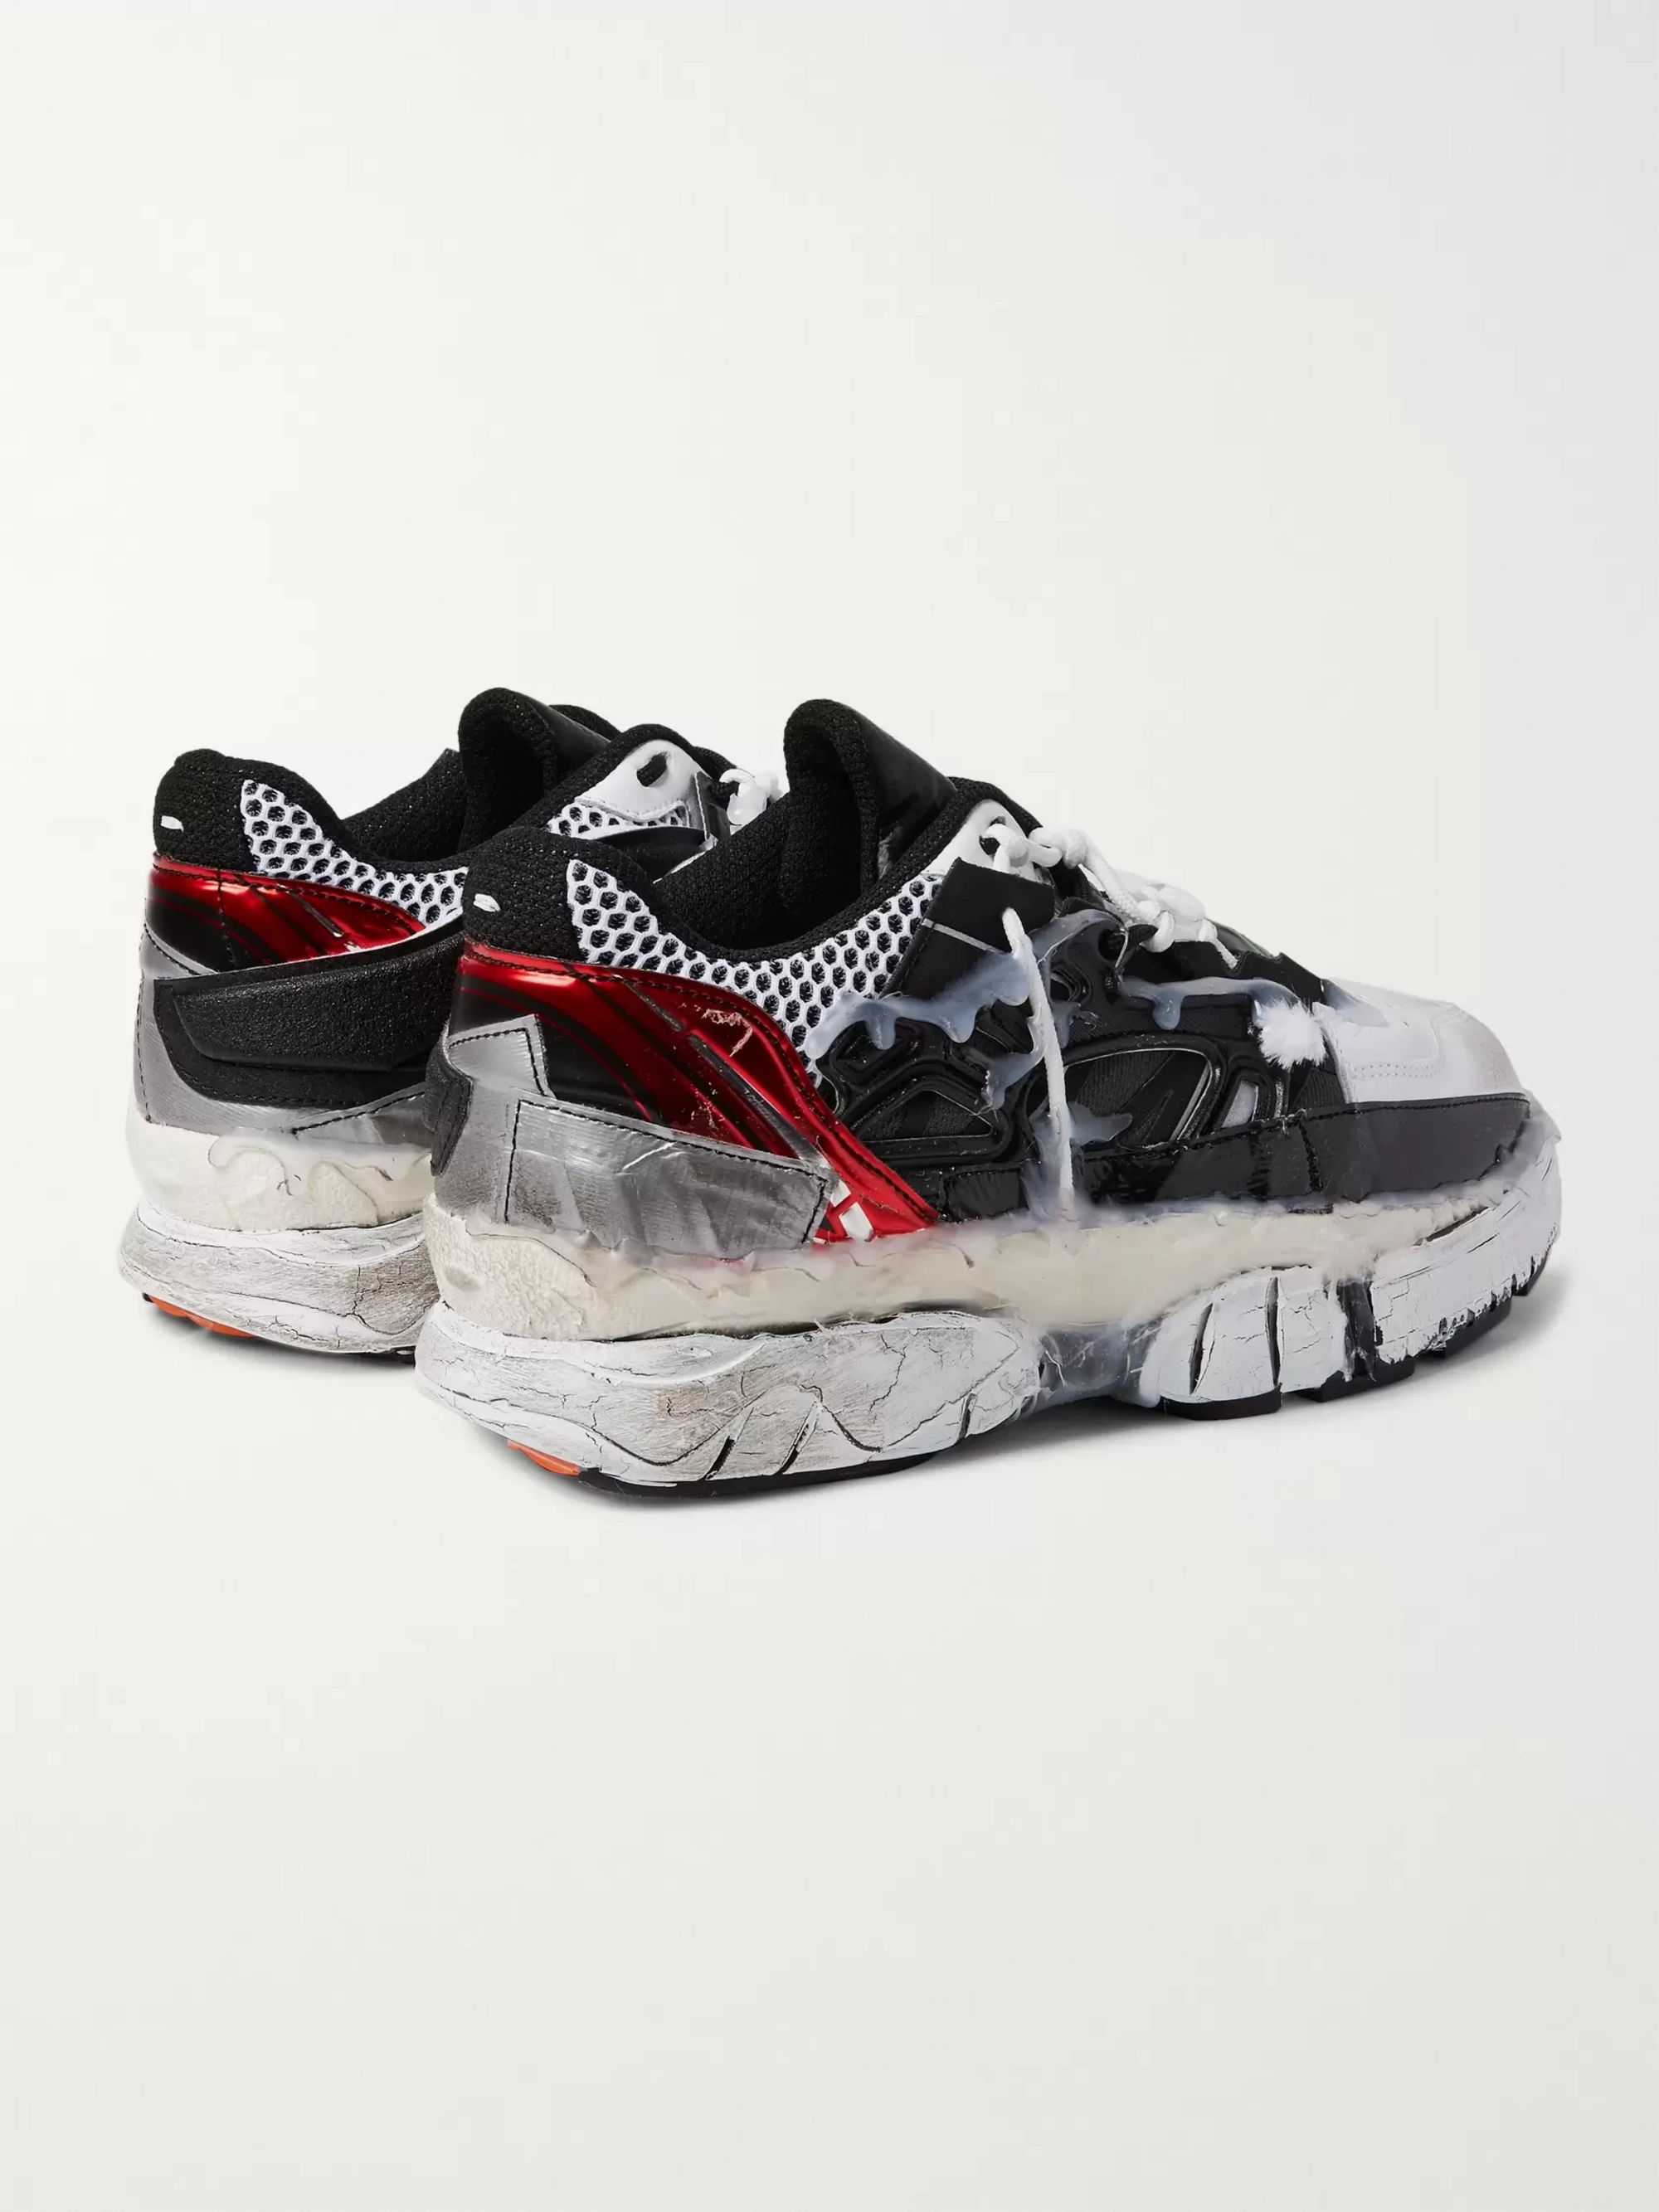 Maison Margiela Fusion Distressed Rubber-Trimmed Leather Sneakers